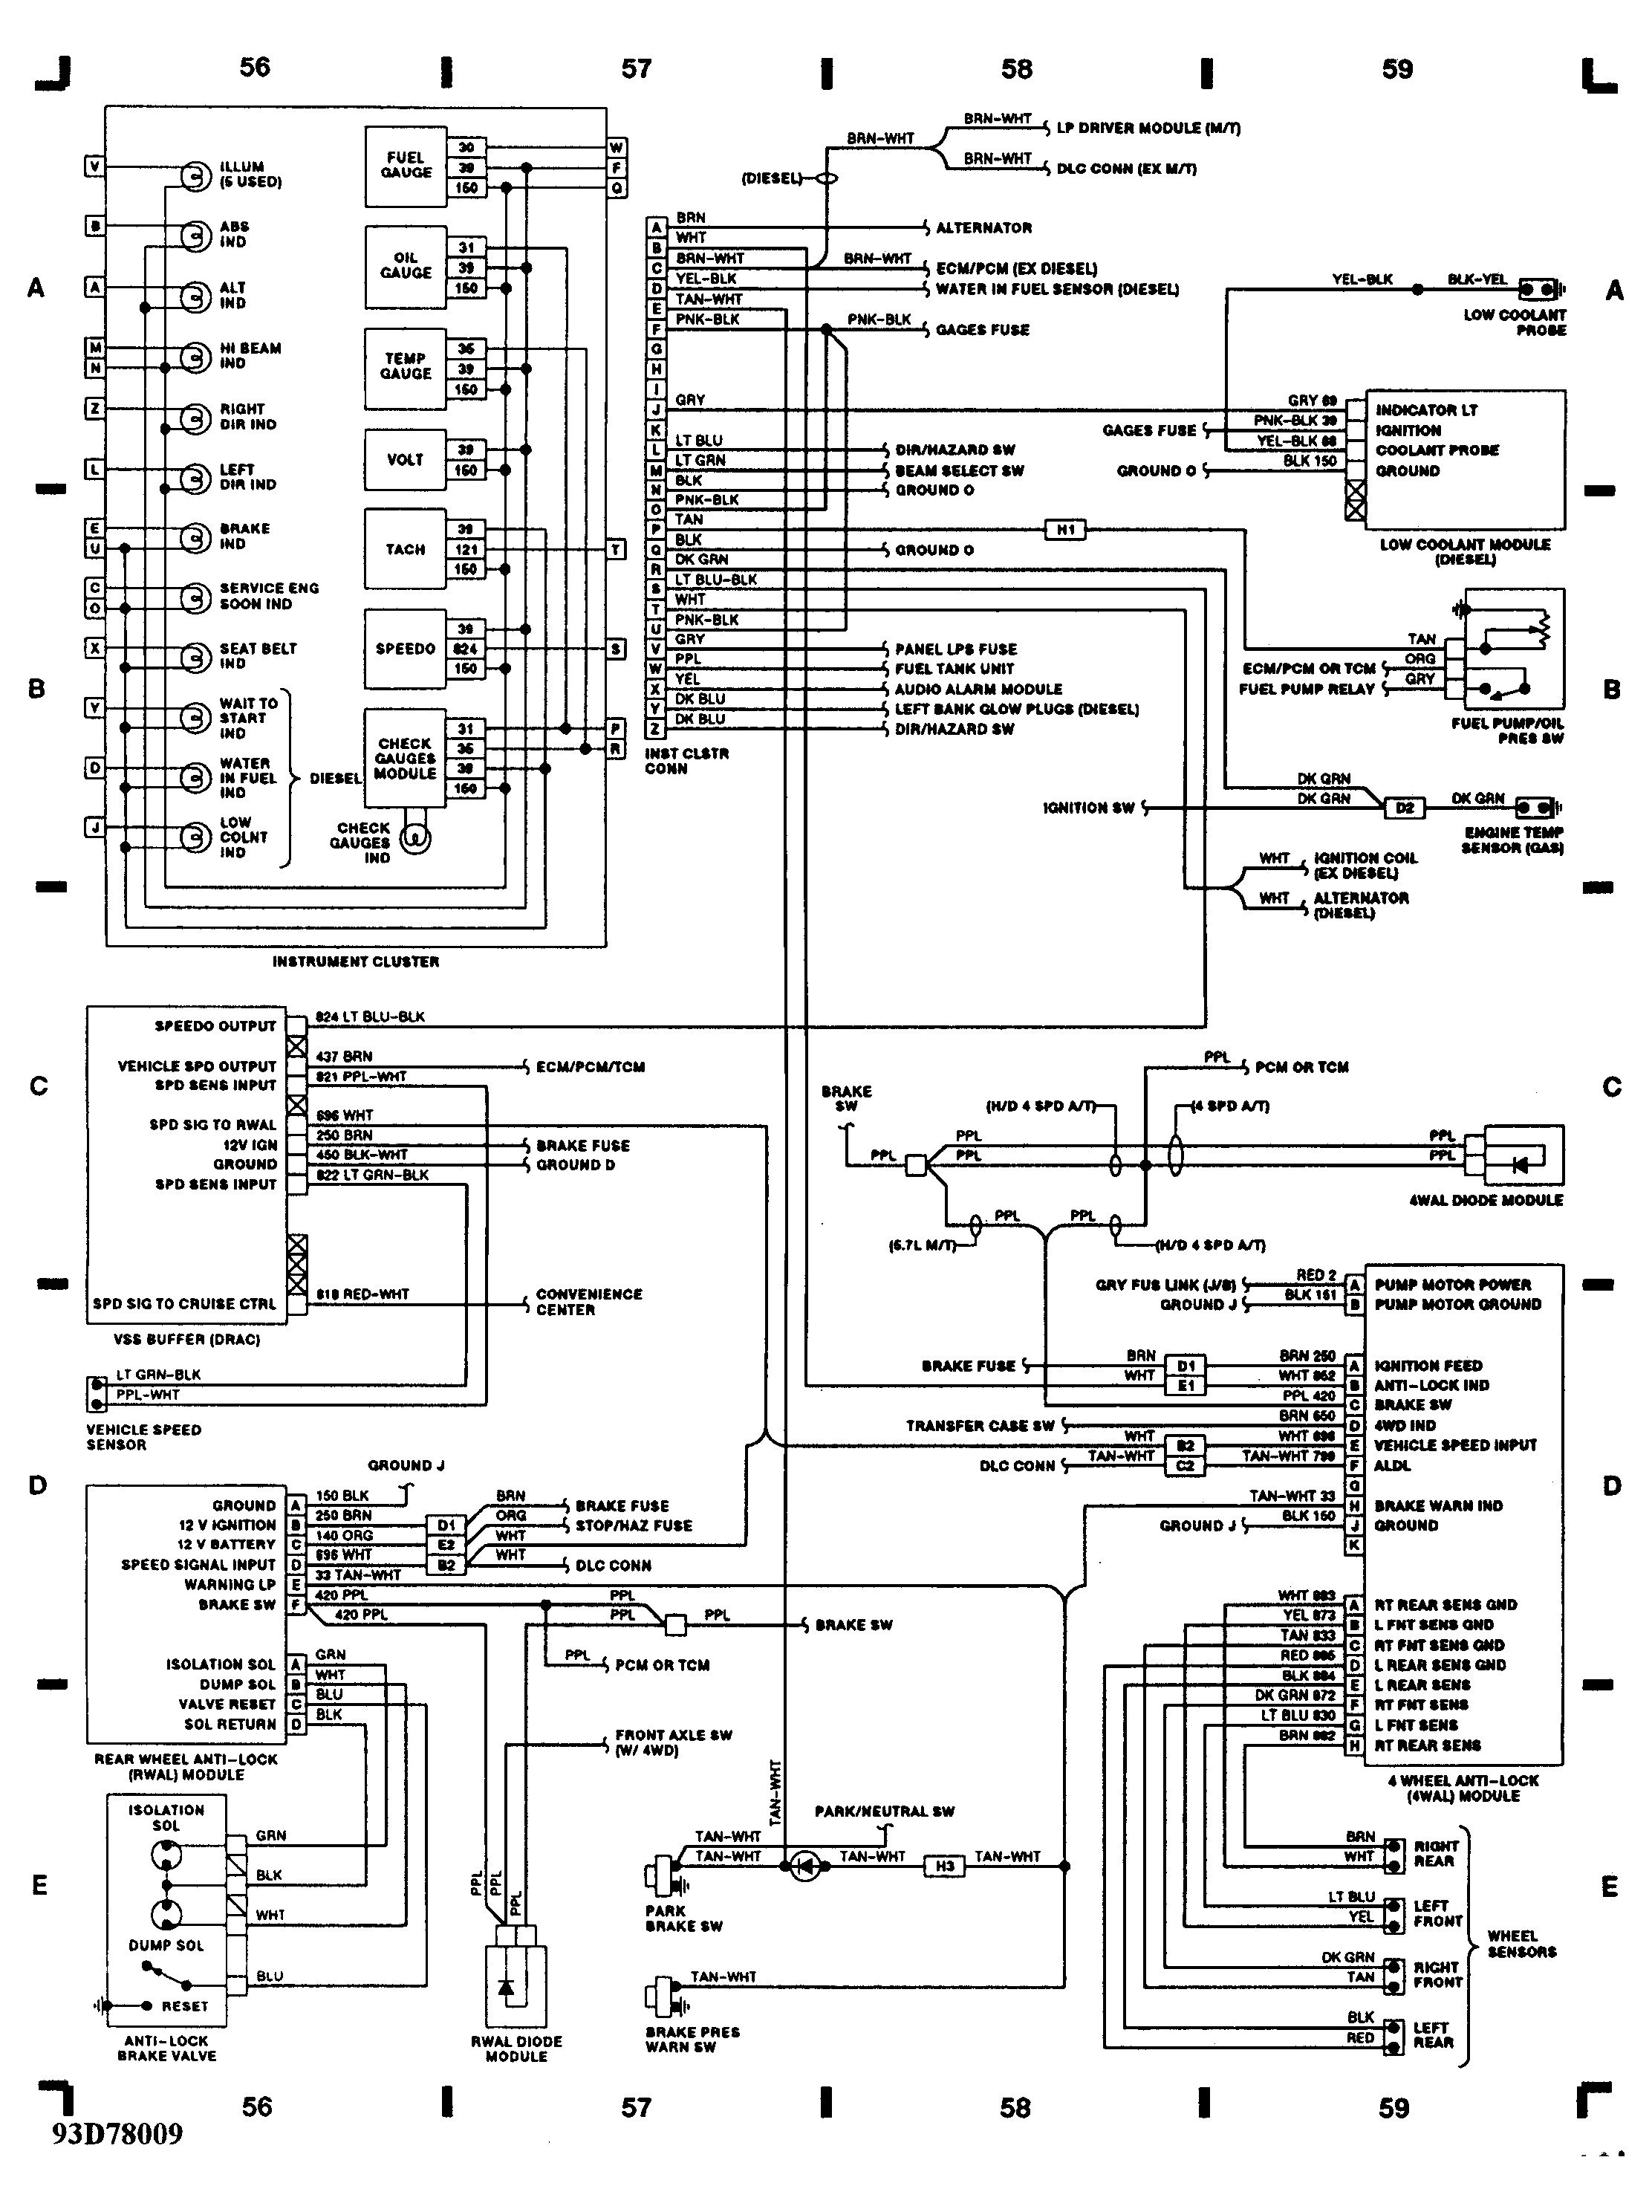 2003 Chevy Trailblazer Parts Diagram 2003 Trailblazer Engine Diagram Smart Wiring Diagrams • Of 2003 Chevy Trailblazer Parts Diagram